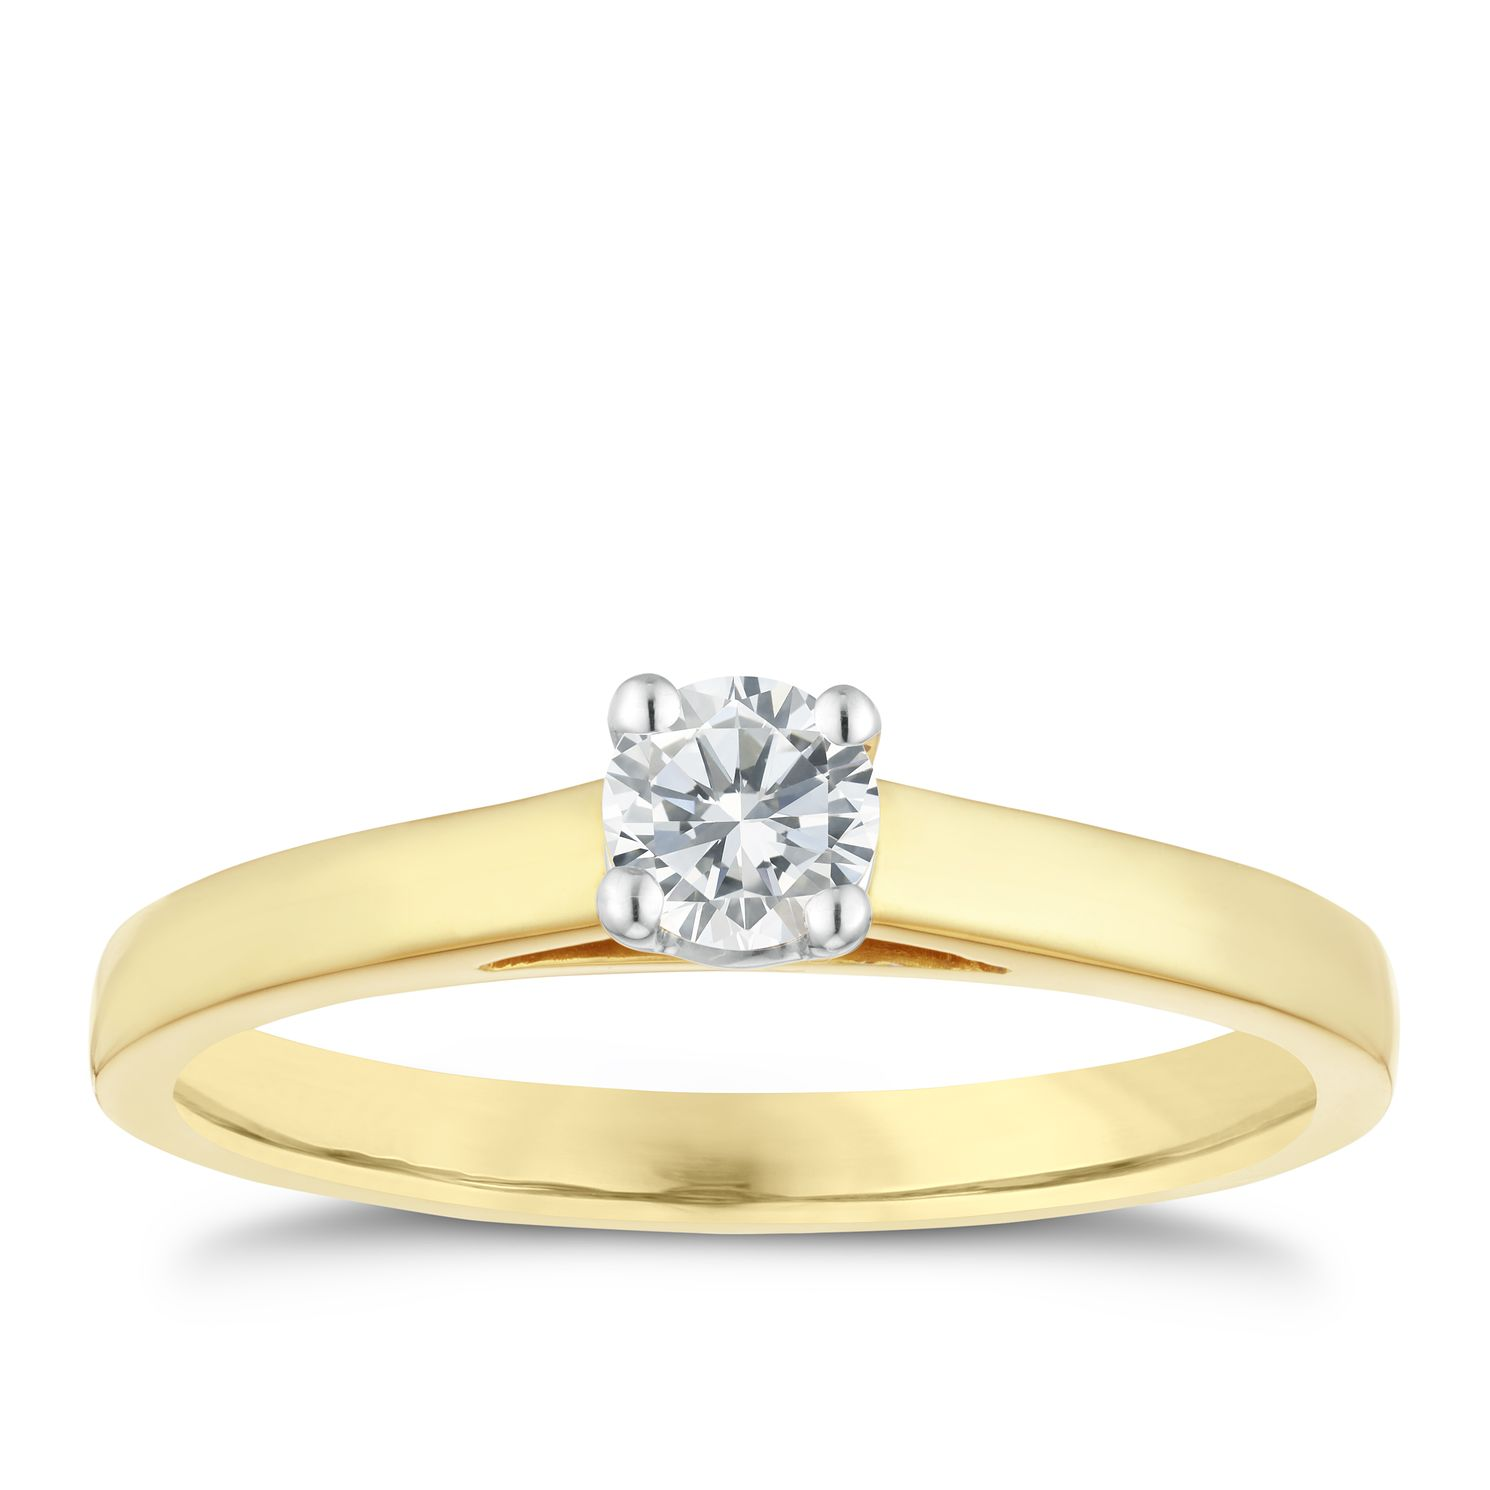 18ct Gold 0.25ct Claw Set Solitaire Diamond Ring - Product number 3107485